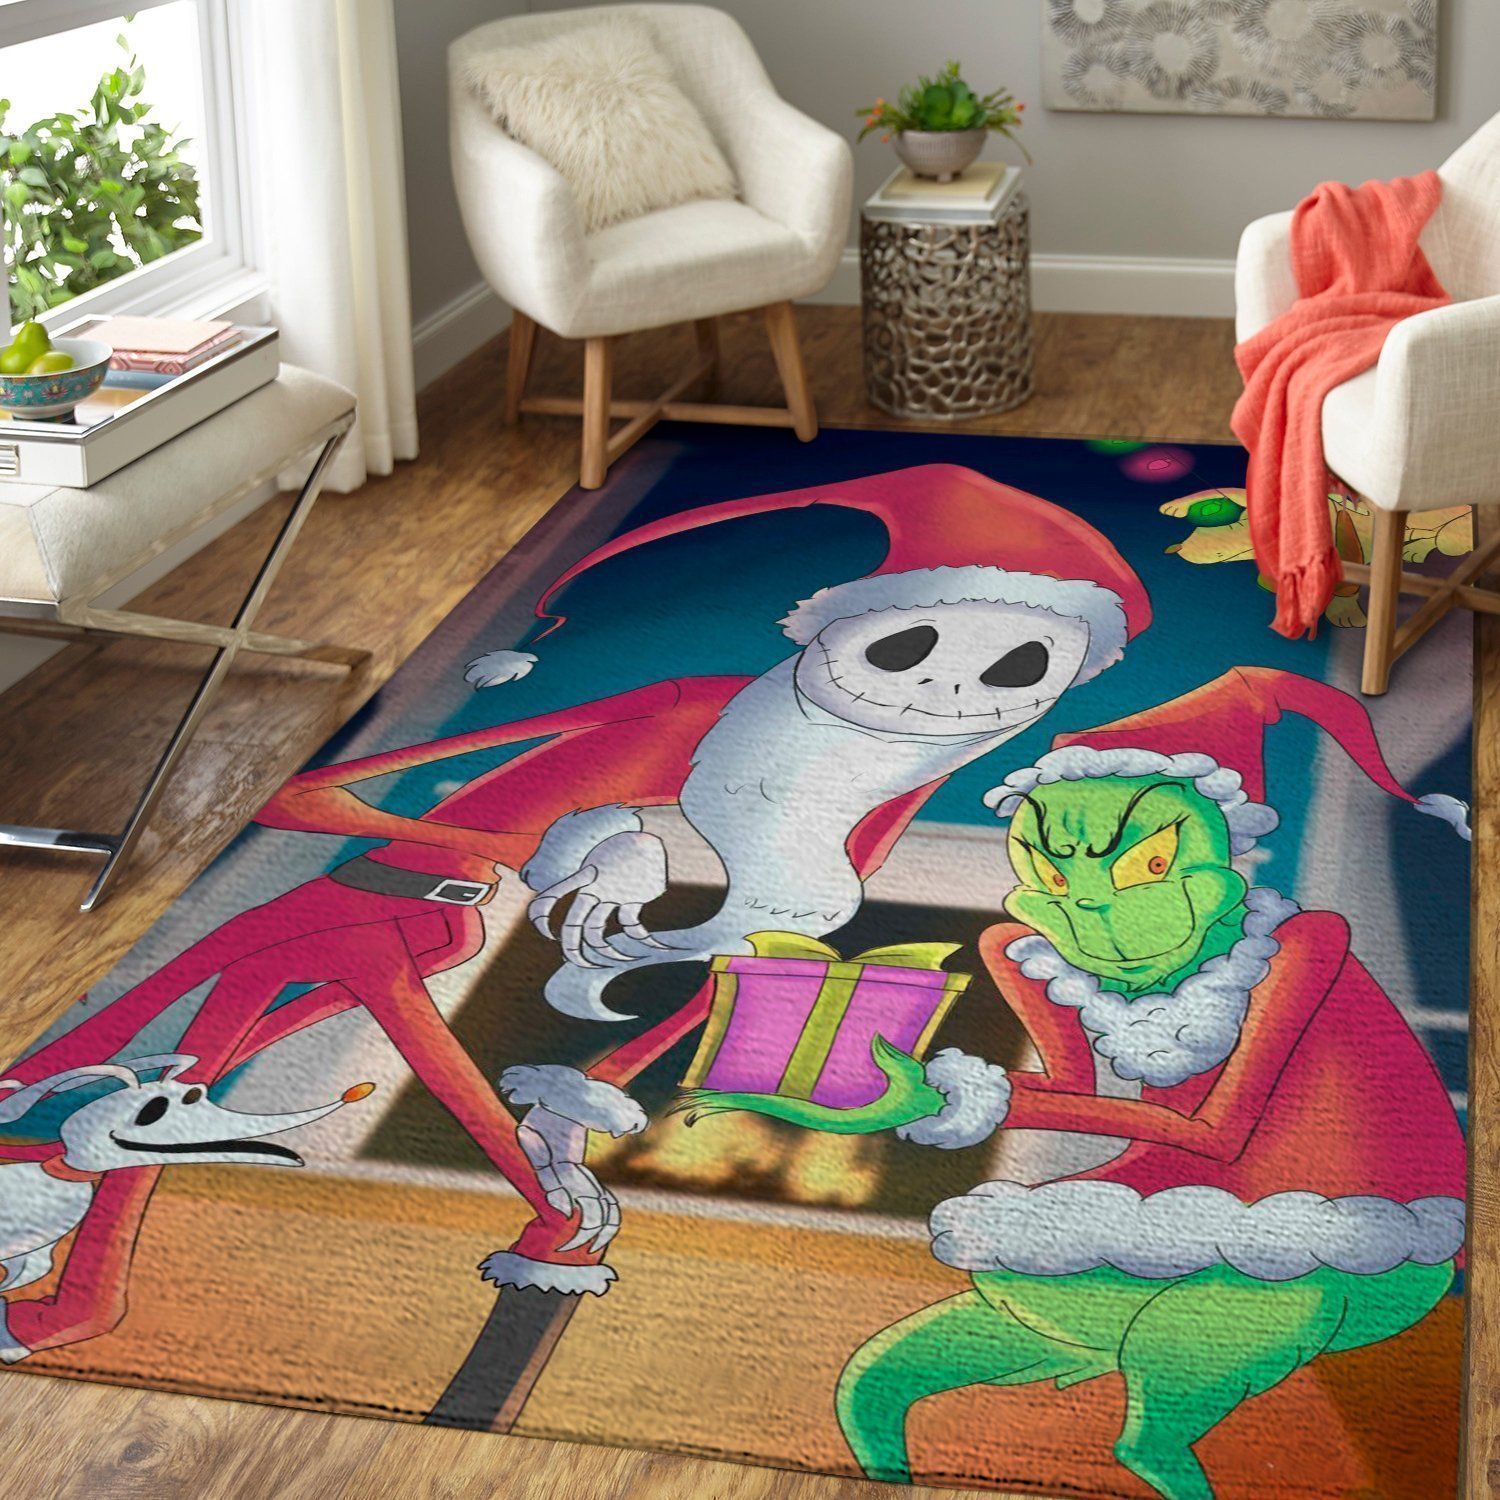 Jack Skellington & Grinch Area Rugs, Christmas Movie Living Room Carpet, Custom Floor Decor 0711